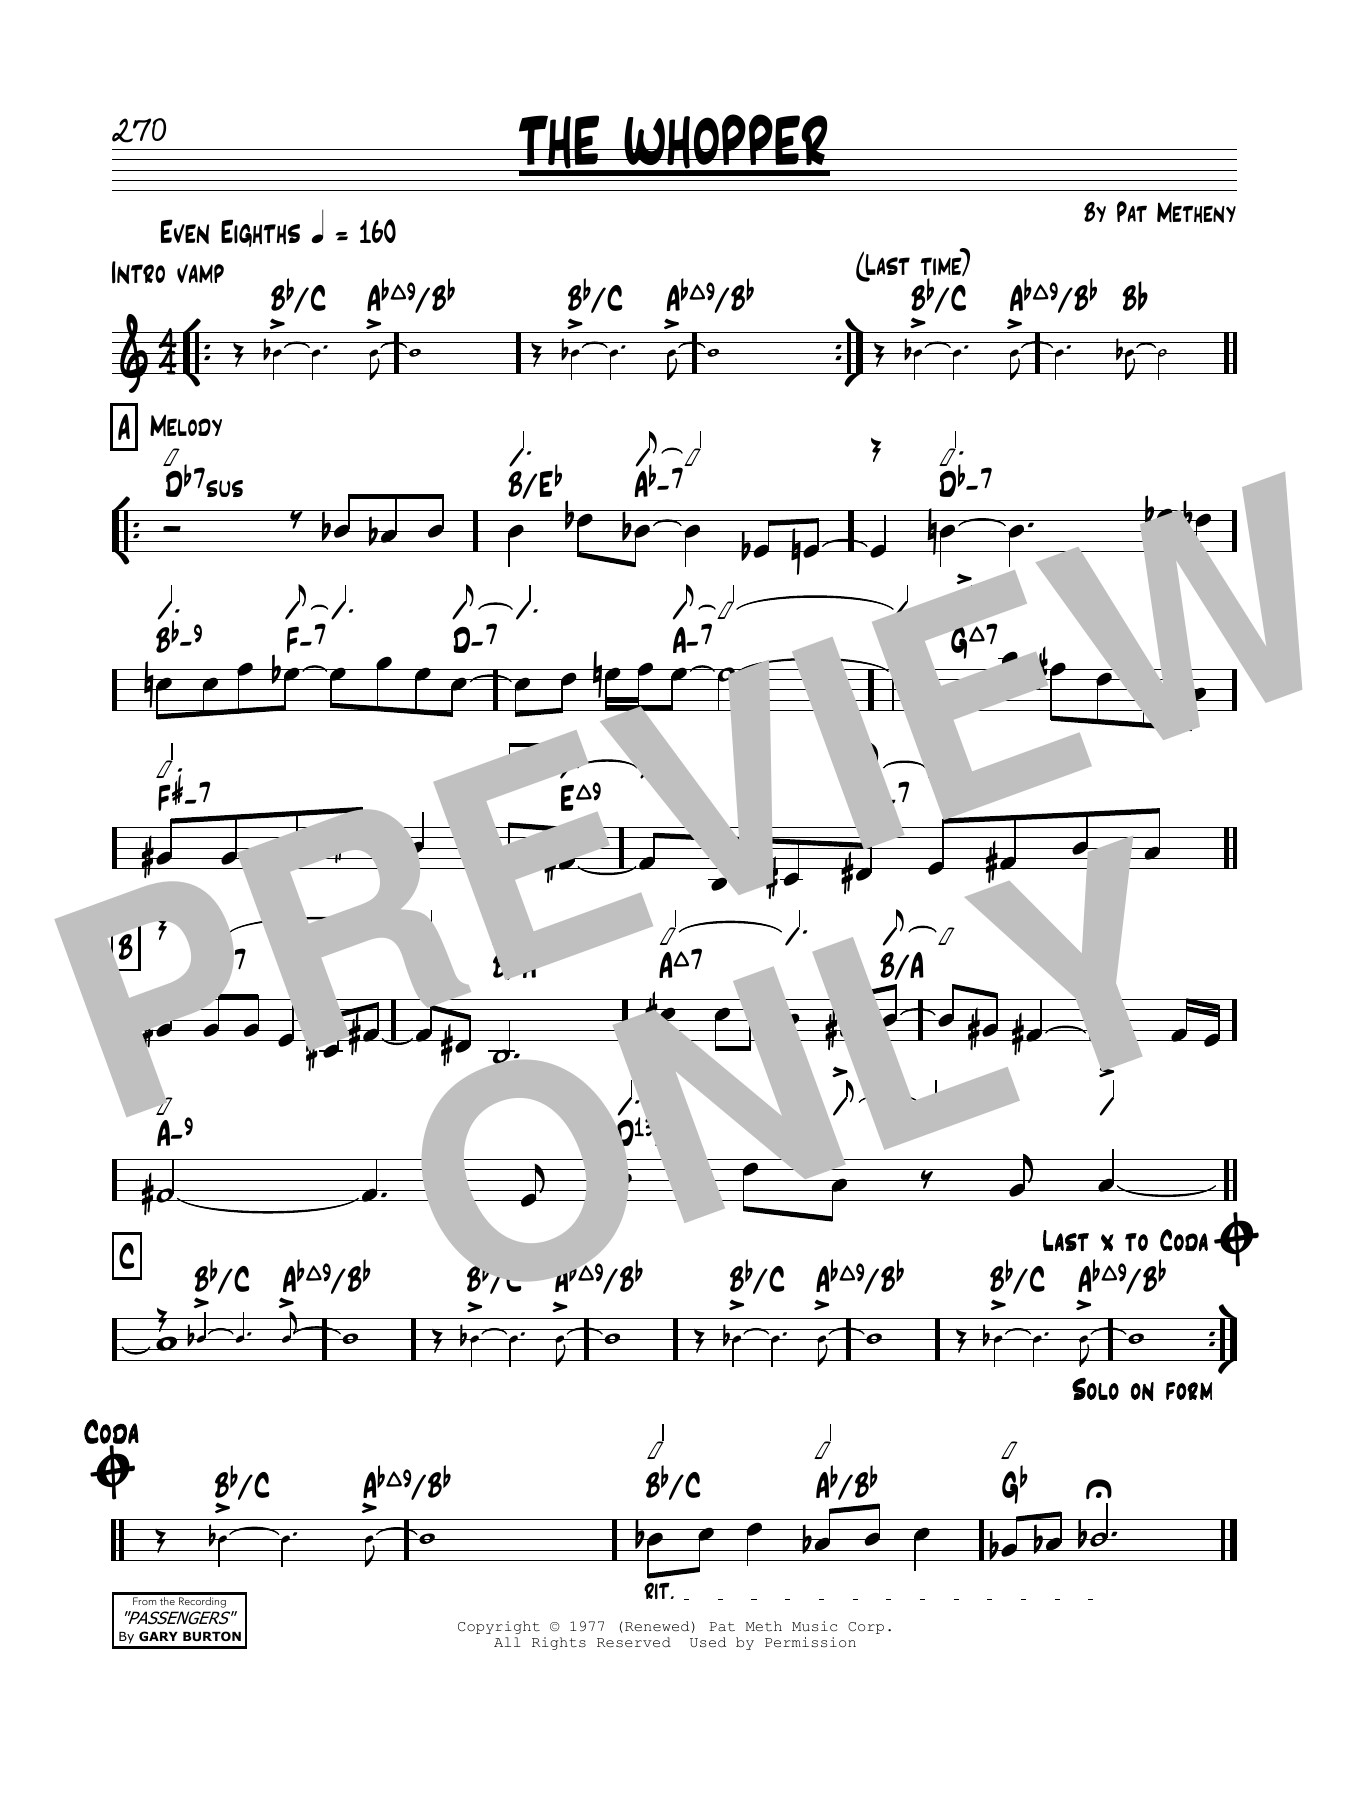 The Whopper Sheet Music